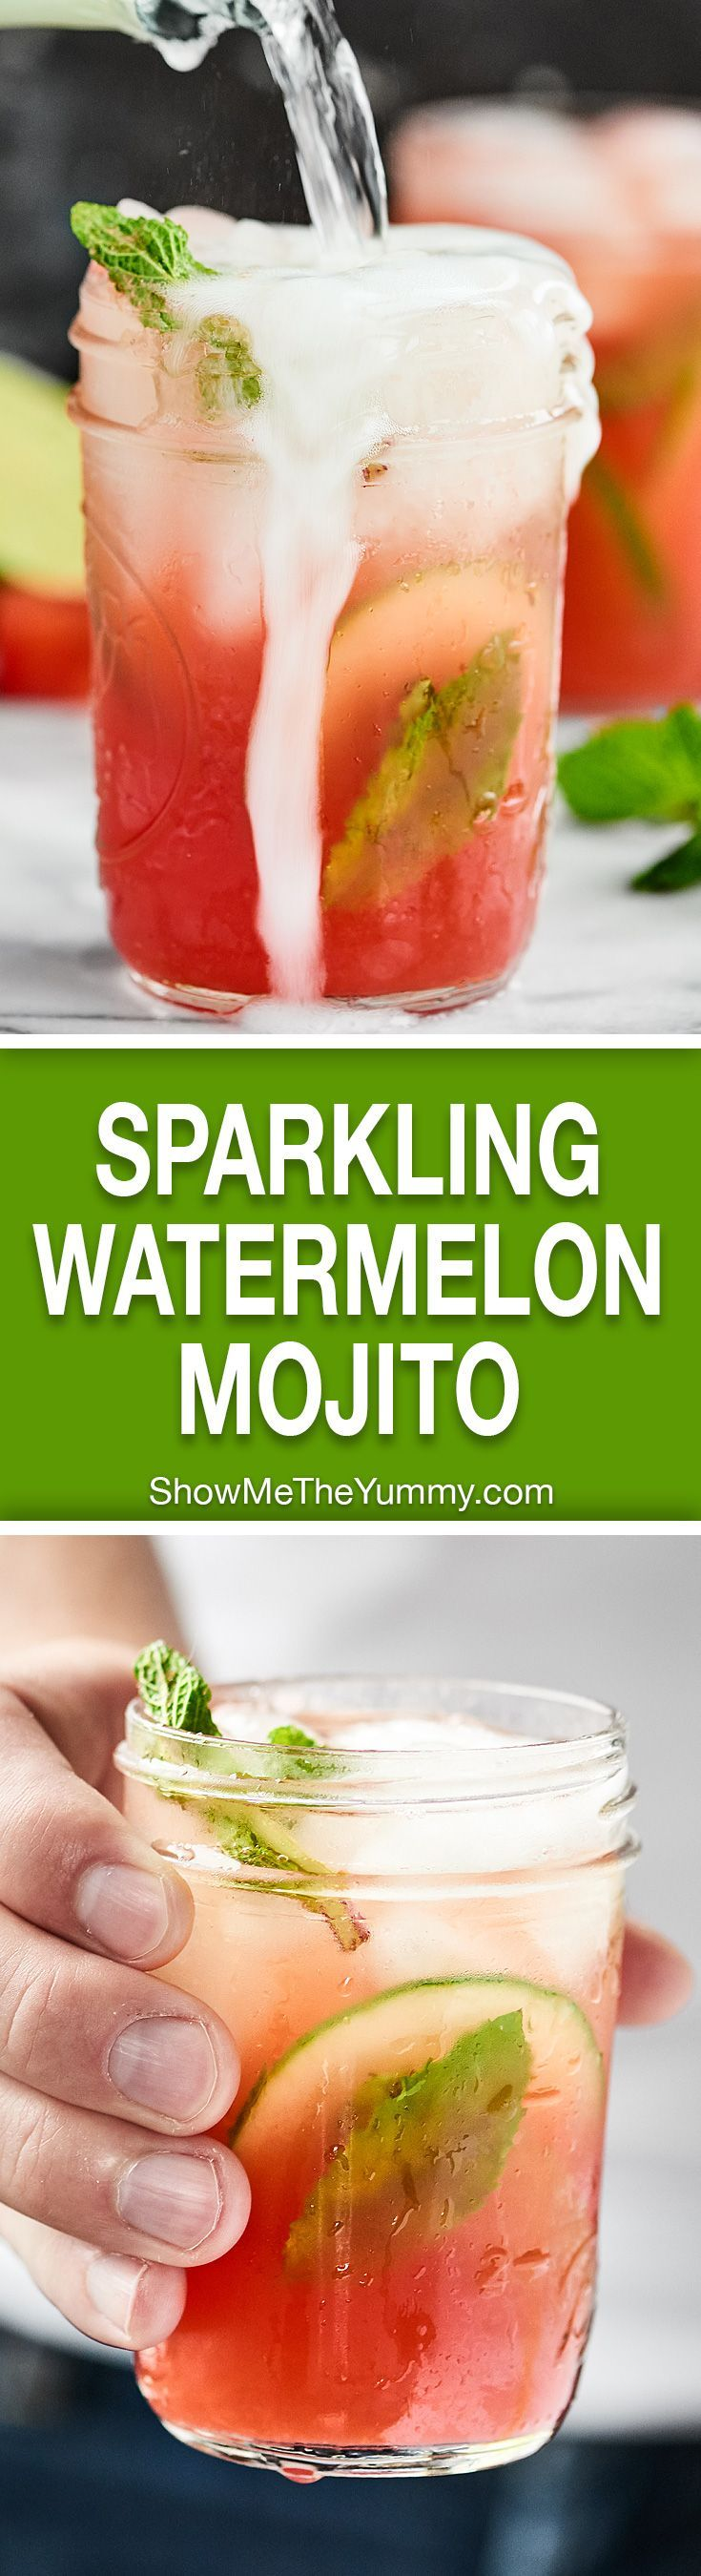 This Sparkling Watermelon Mojito is what summer is all about. Juicy watermelon, fresh mint, rum, and bubbly pinot grigio. . . so easy and refreshing! http://showmetheyummy.com Recipe made in partnership with @BarefootWine #watermelonmojito #pinotgrigio